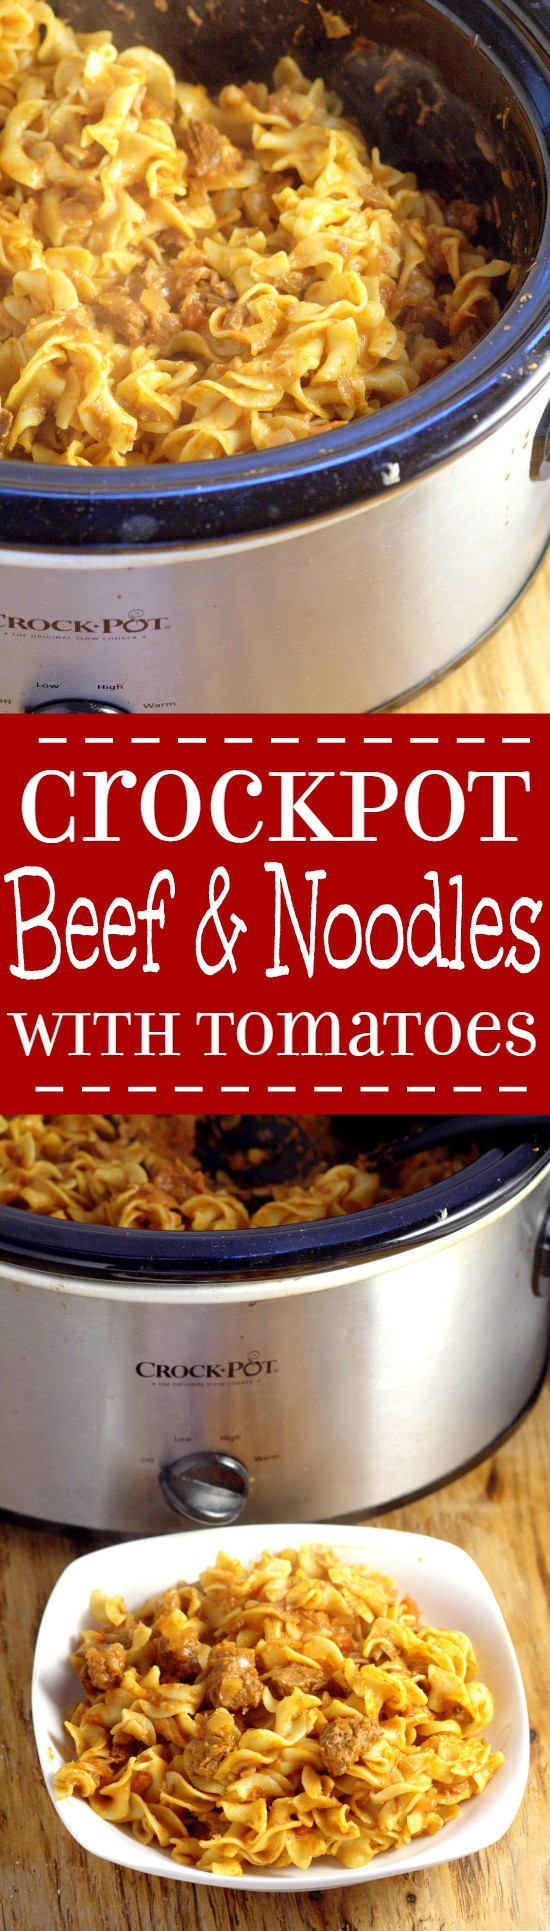 Crockpot Beef and Noodles with Tomatoes recipe is a dinner time classic with juicy stew beef, zesty tomatoes, and comforting egg noodles, all in the slow cooker.  Perfect for a simple and easy family dinner recipe!